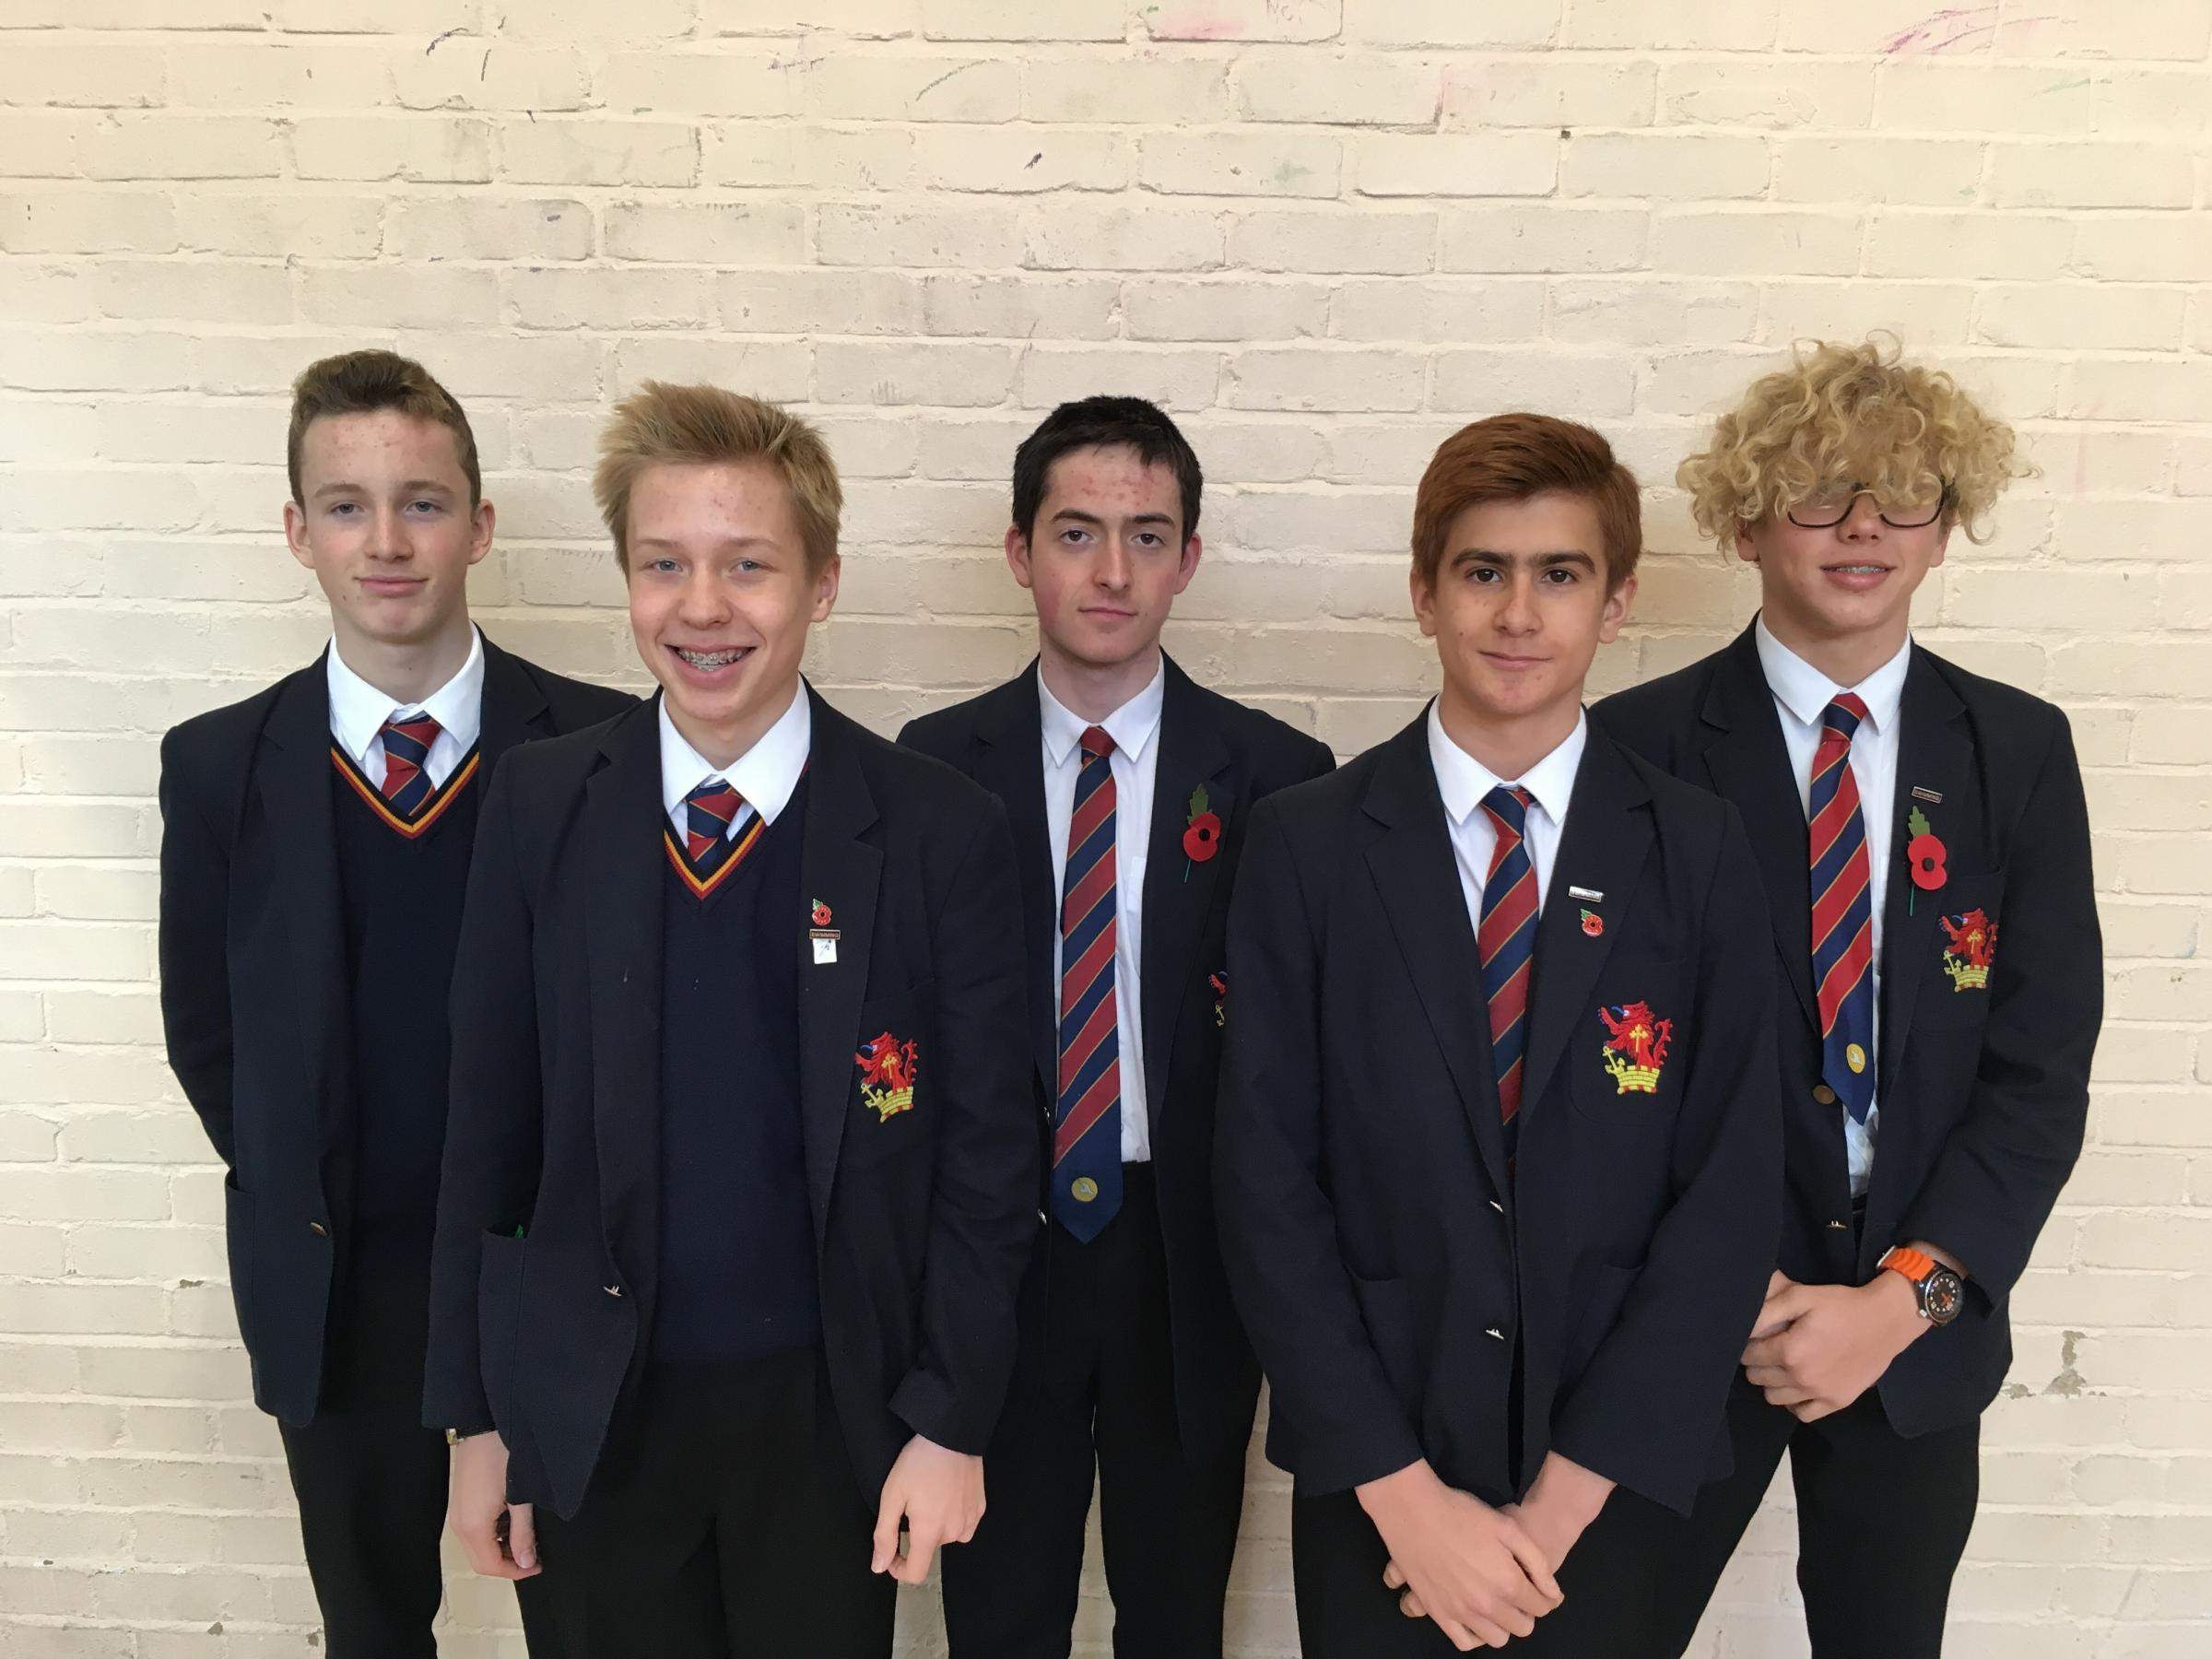 Westcliff High School for boys make it to national swimming finals